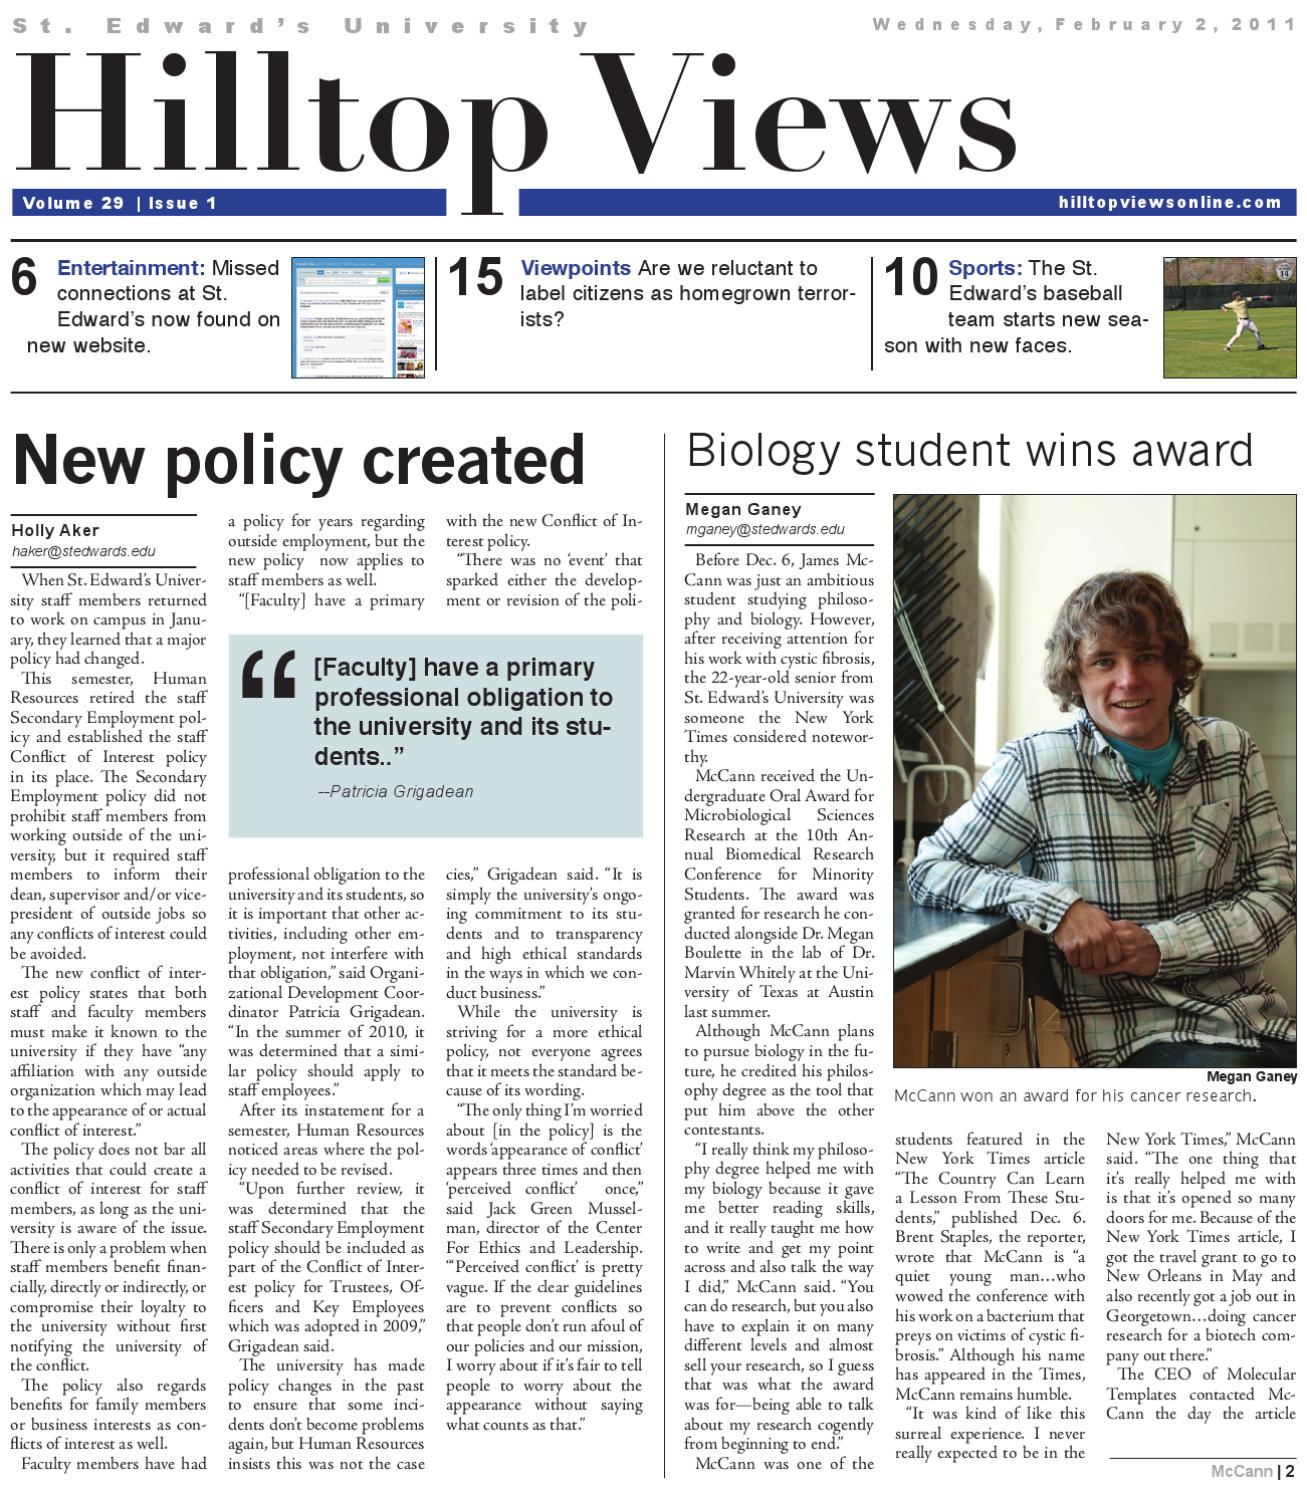 Issue #1 - February 2, 2011 by Hilltop Views - issuu